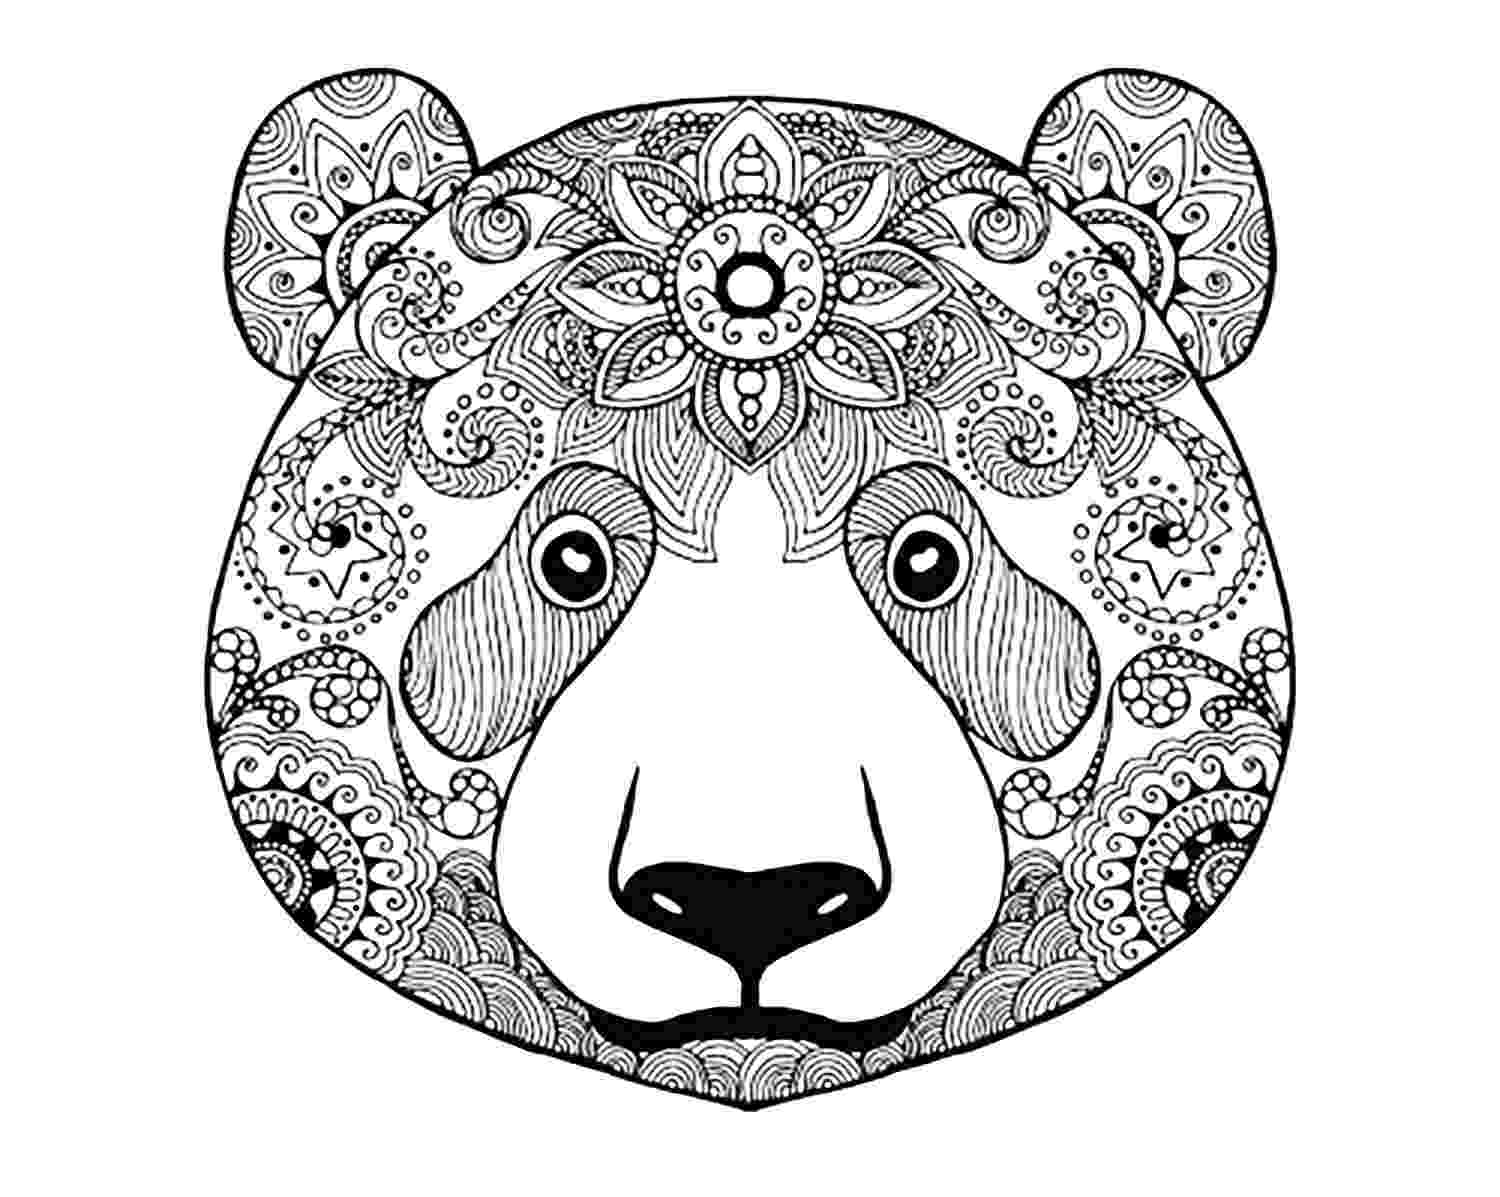 animal coloring pages printable adult coloring pages animals best coloring pages for kids printable animal coloring pages